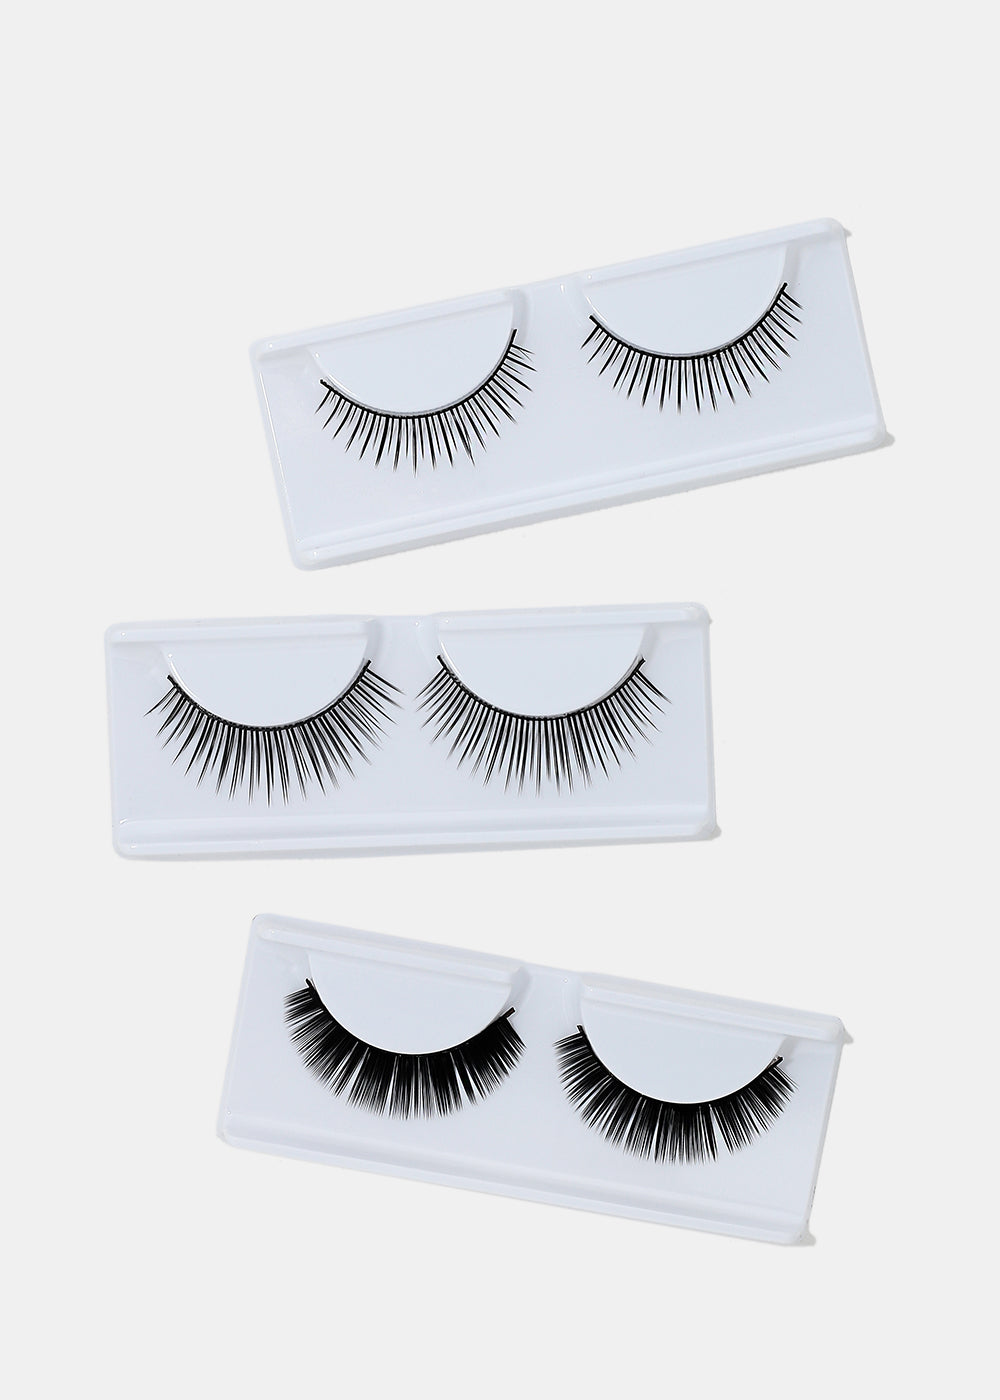 3 Pair Fake Eyelash Kit- 005